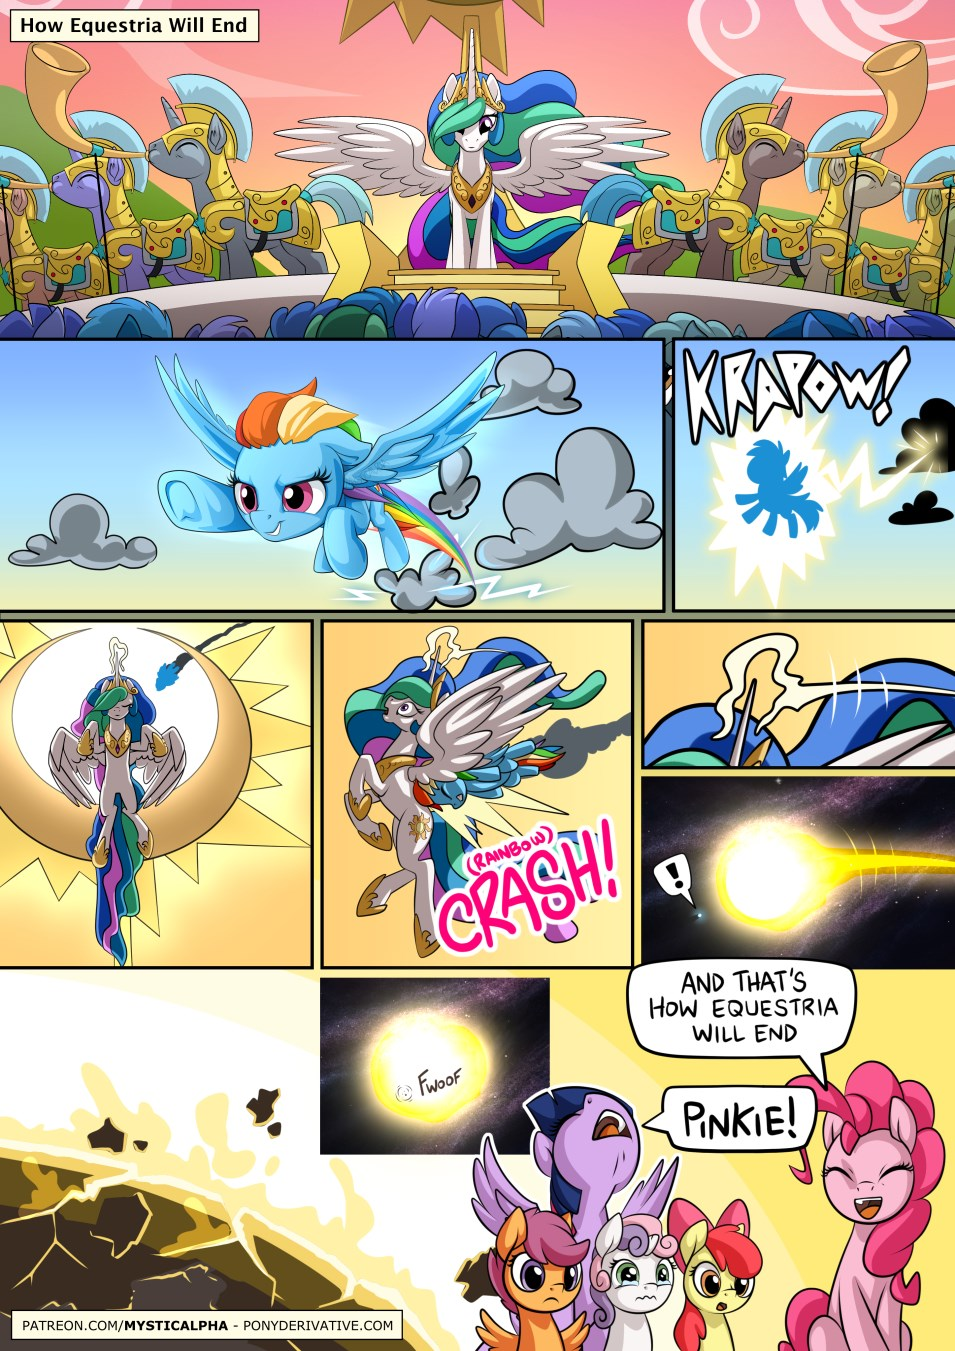 My Little Brony Scootaloo Page 12 My Little Pony Friendship Is Magic Brony Pokemon Go Cheezburger Scootaloo is a growing filly but like most they start to learn more of dangerous tricks they can perform, scootaloo tries one and she might just. pony friendship is magic brony